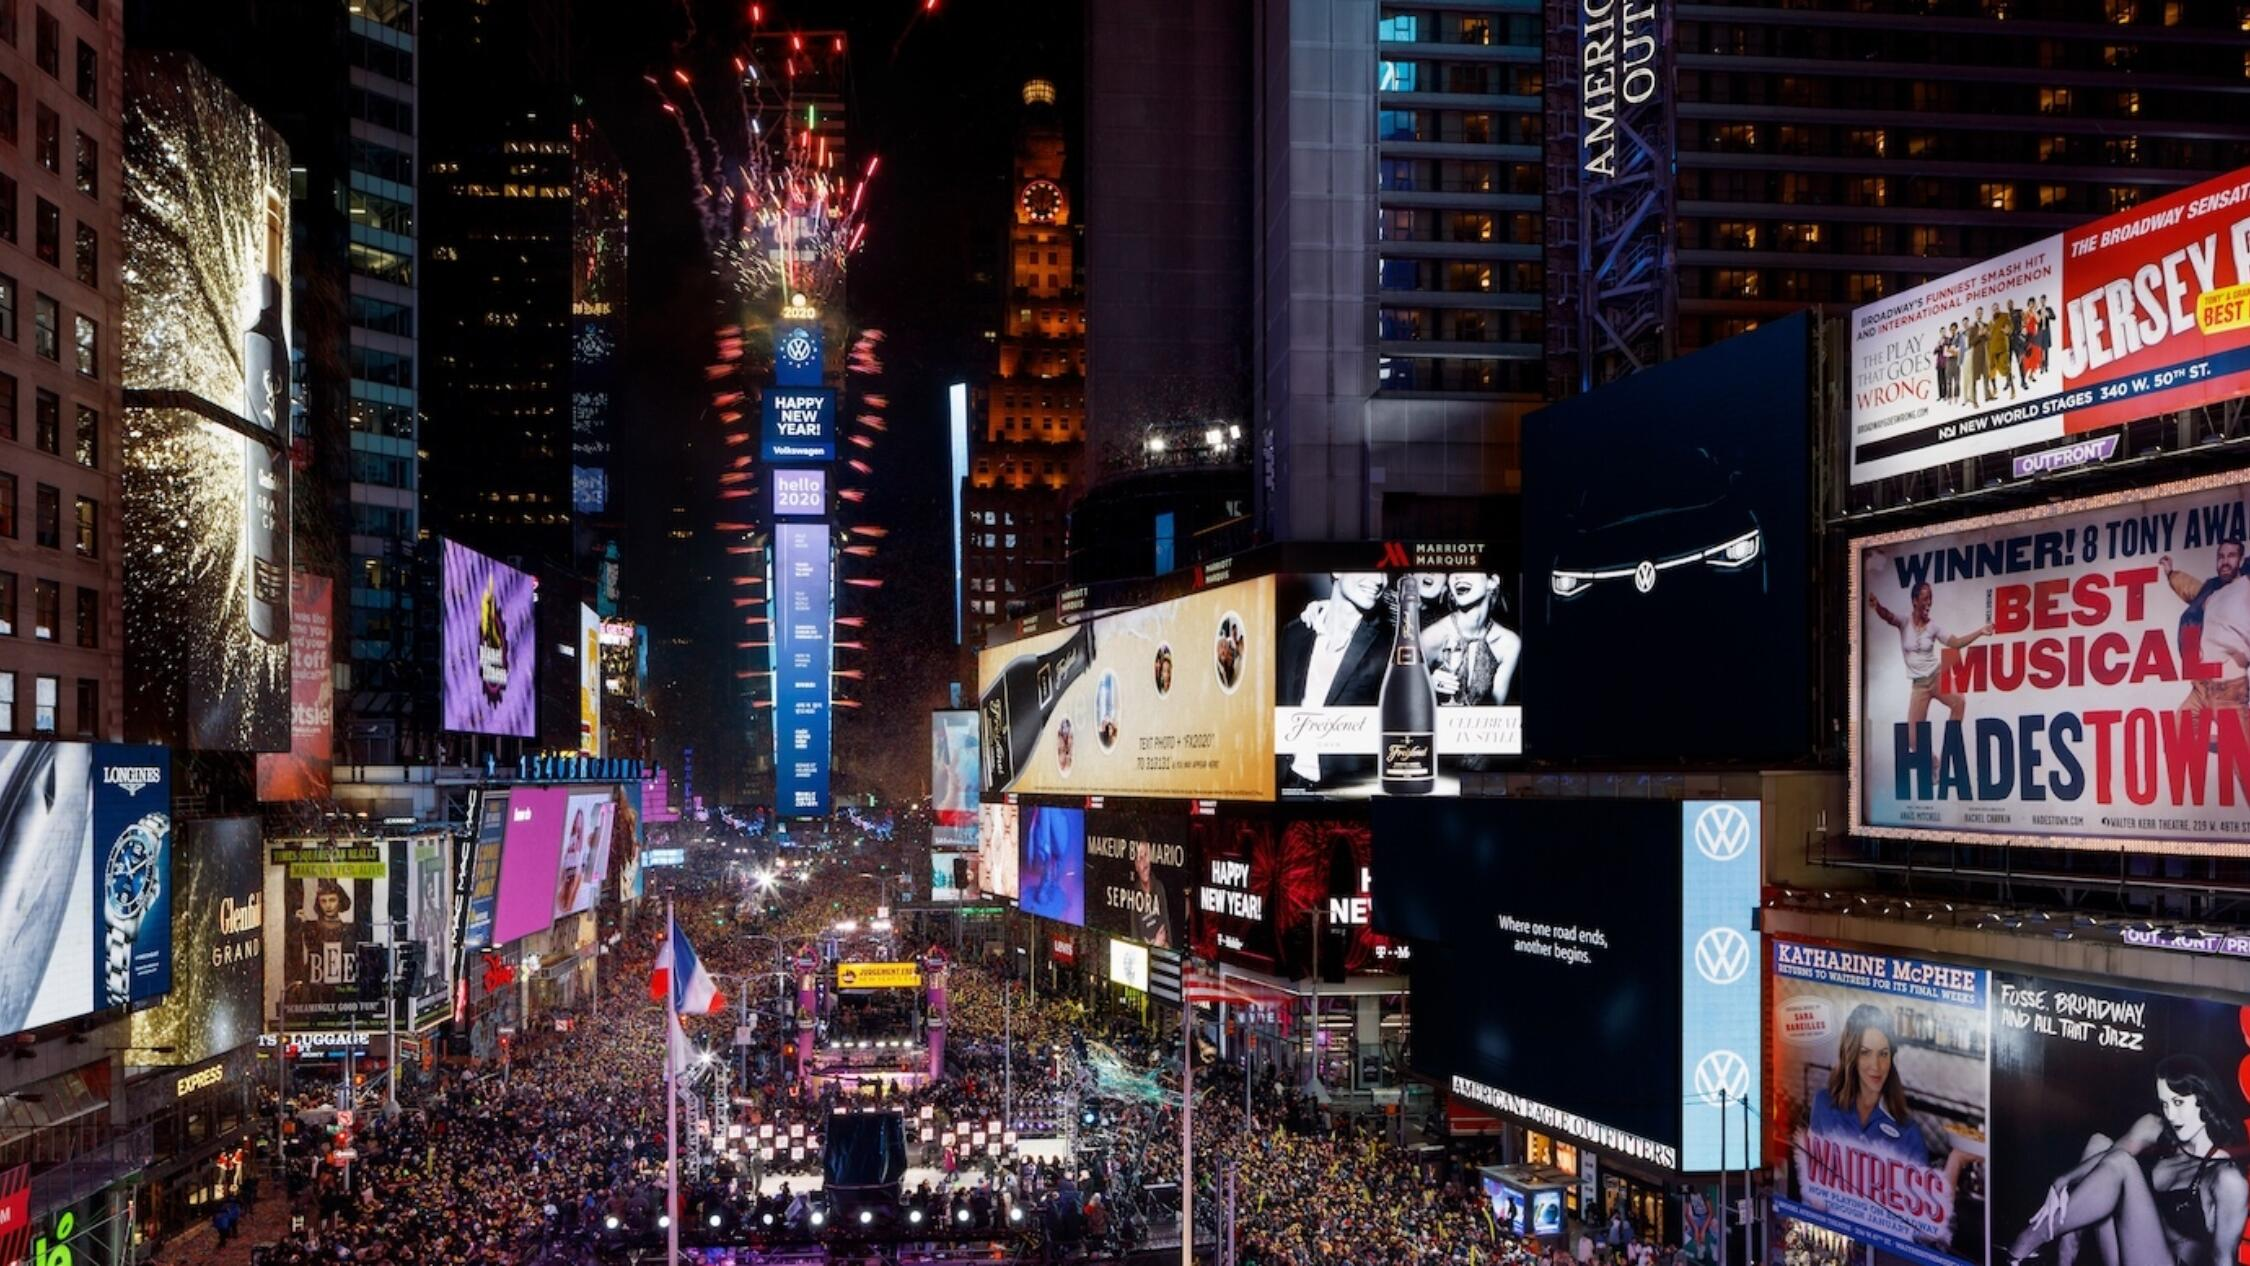 New Year's Eve at One Times Square with massive crowd and fireworks launched from the building